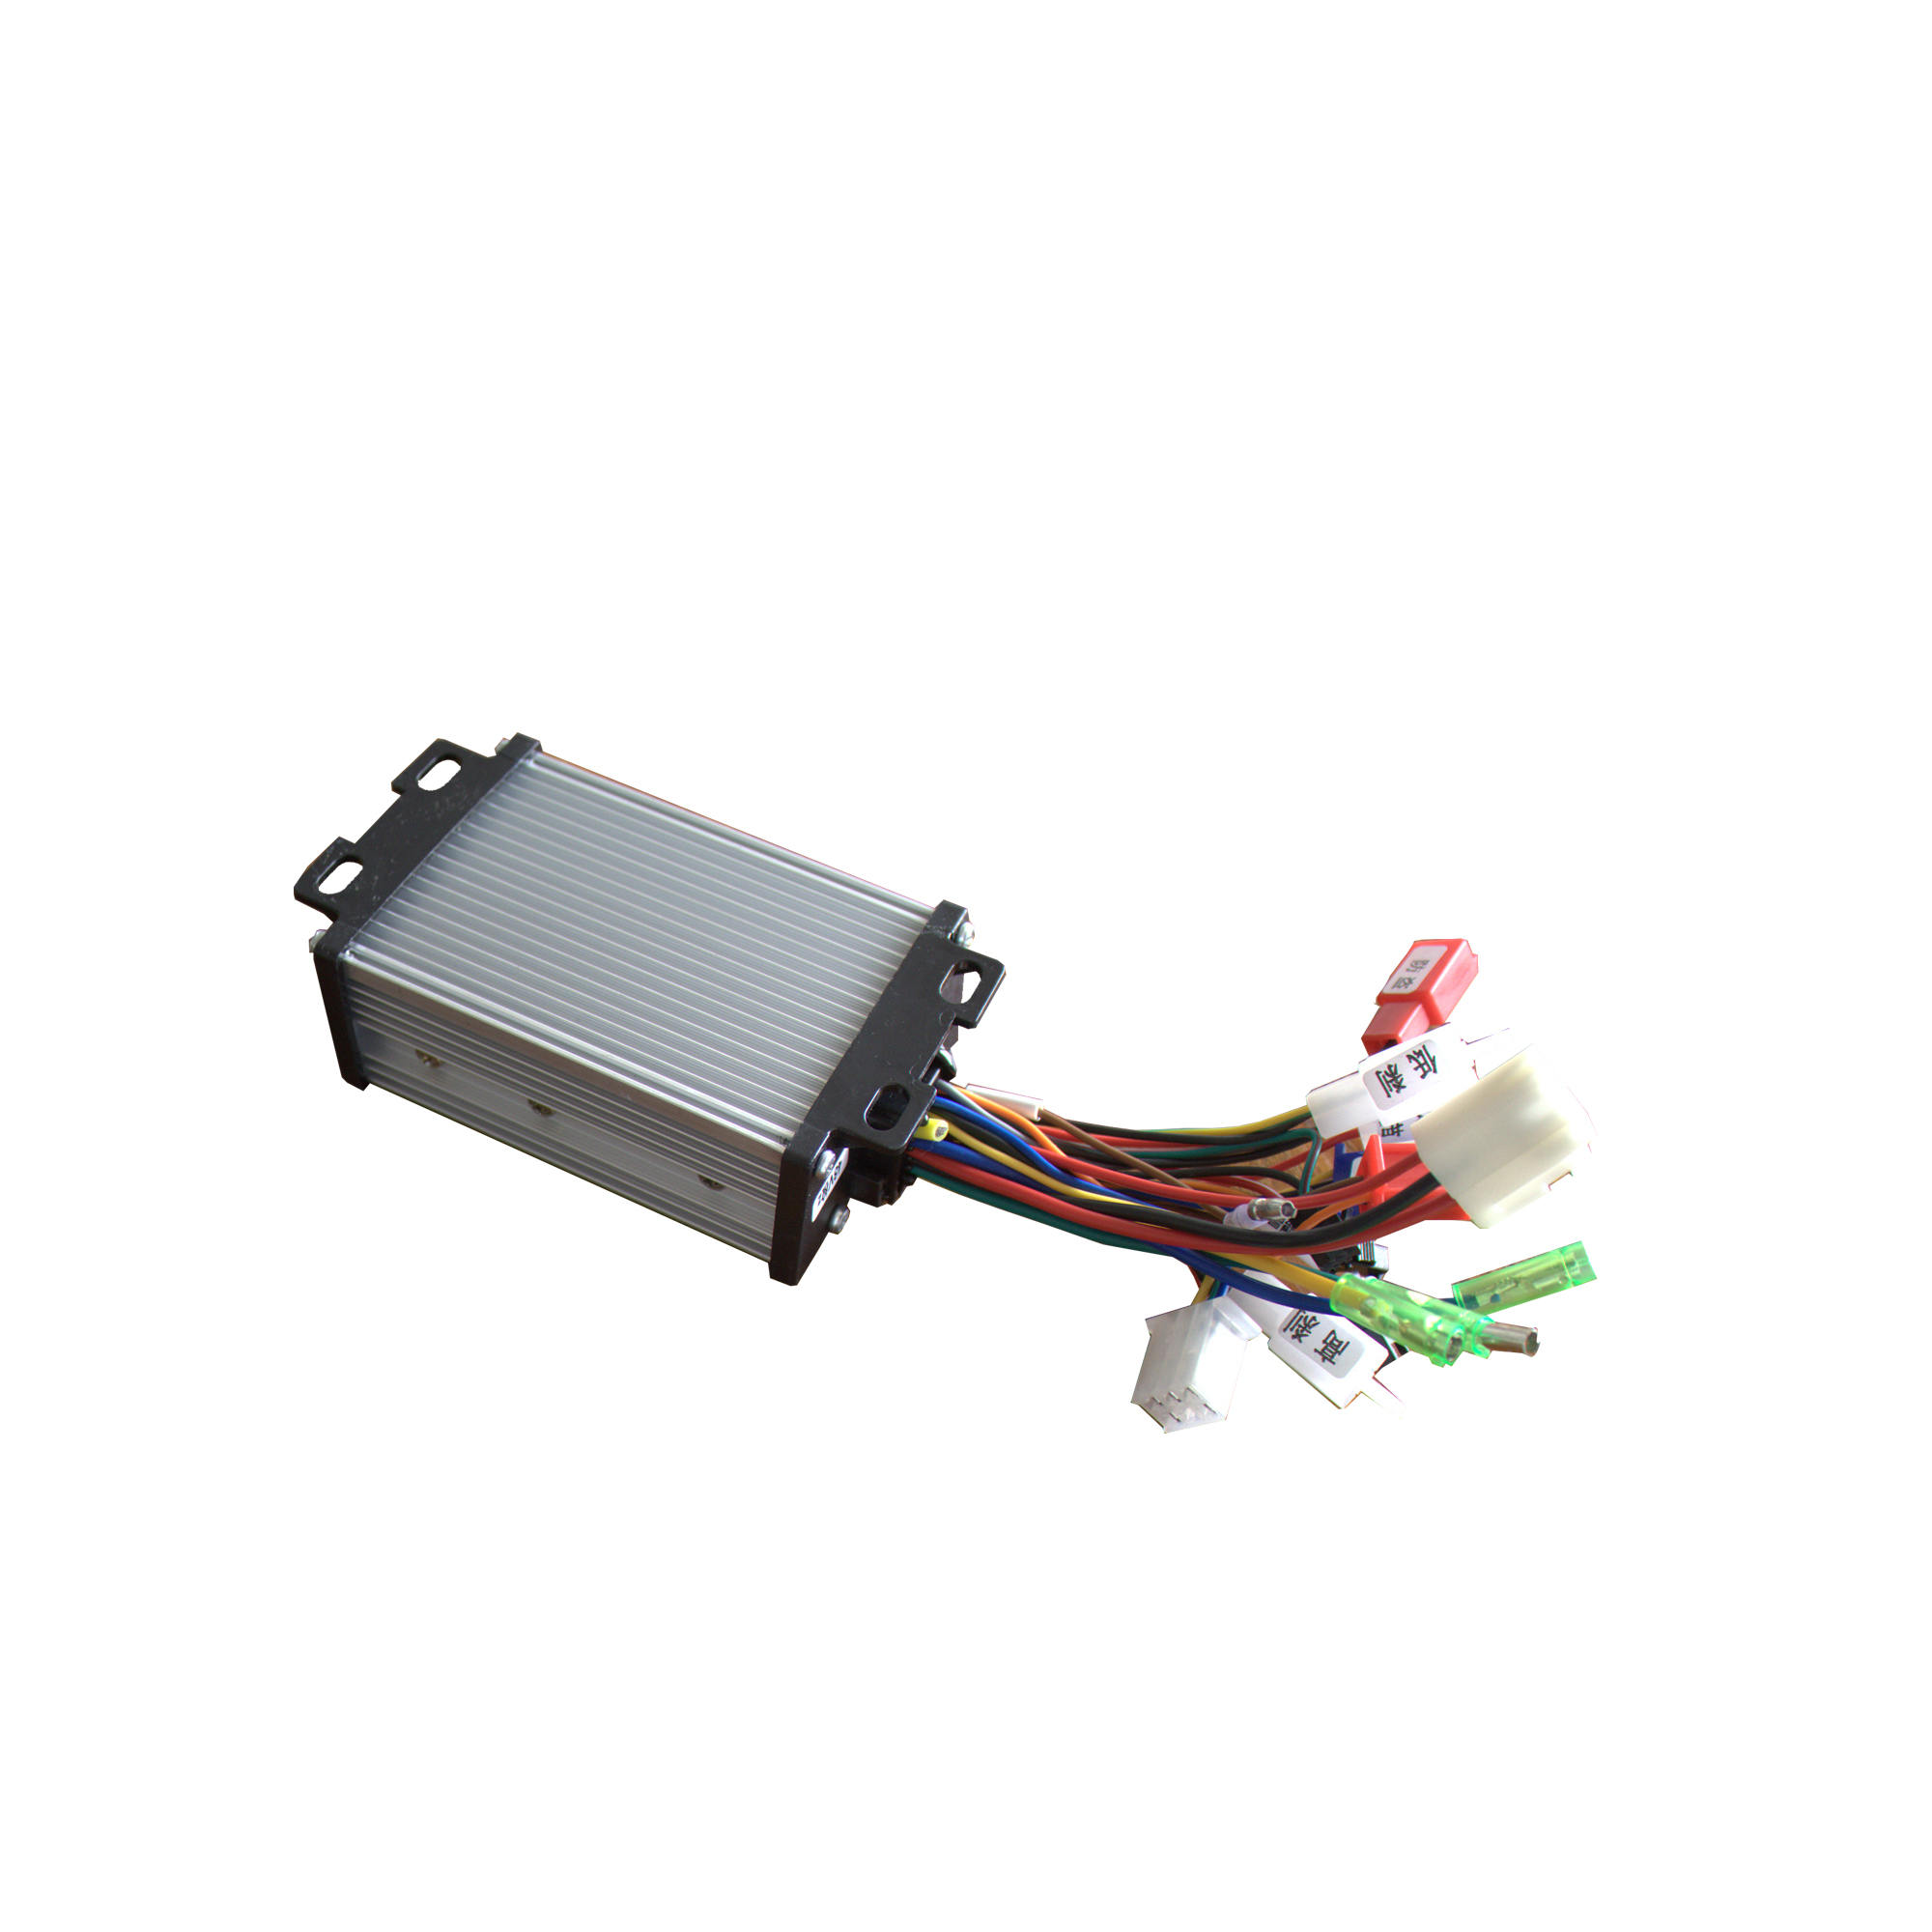 Wholesale China Scooter Controller Online Buy Best 36v Electric Wiring Diagram Factory Shipment 350w 6 Tube Bike Strongscooter Strong